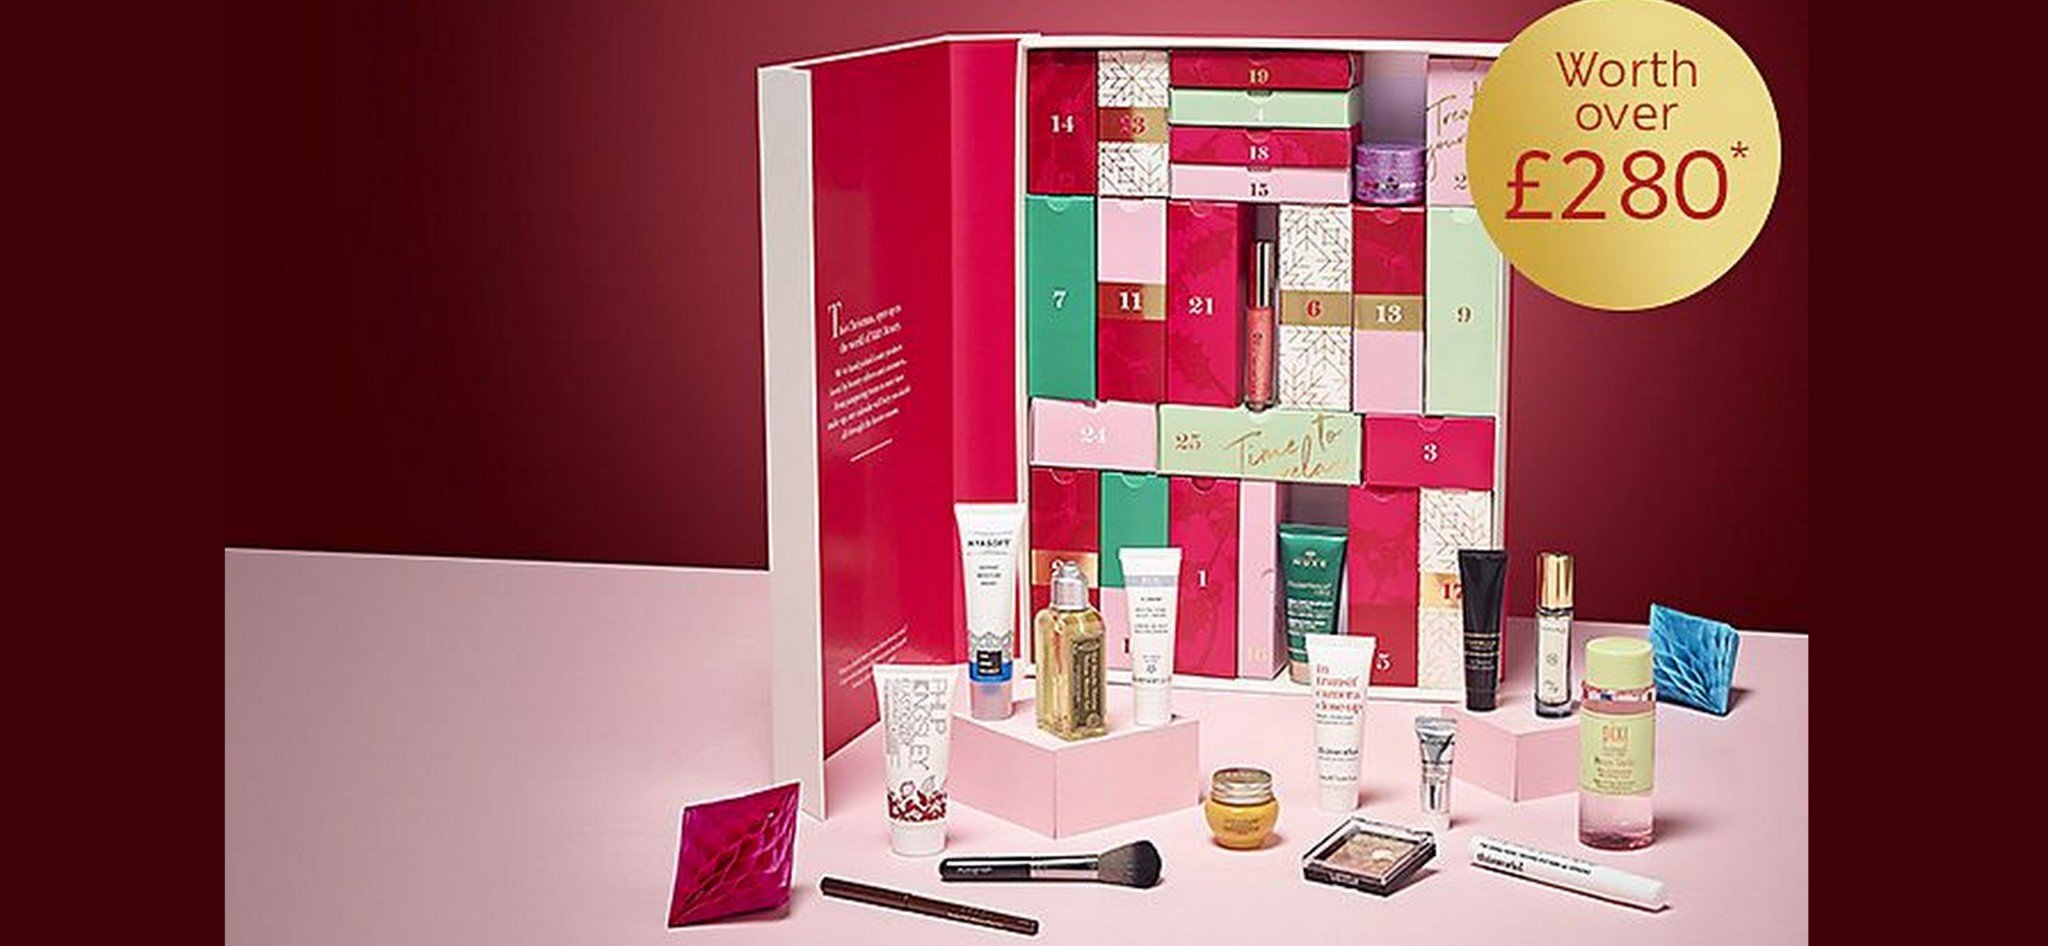 Get The £280 M&s Beauty Advent Calendar For Only £35 M&s Advent Calendar 2019